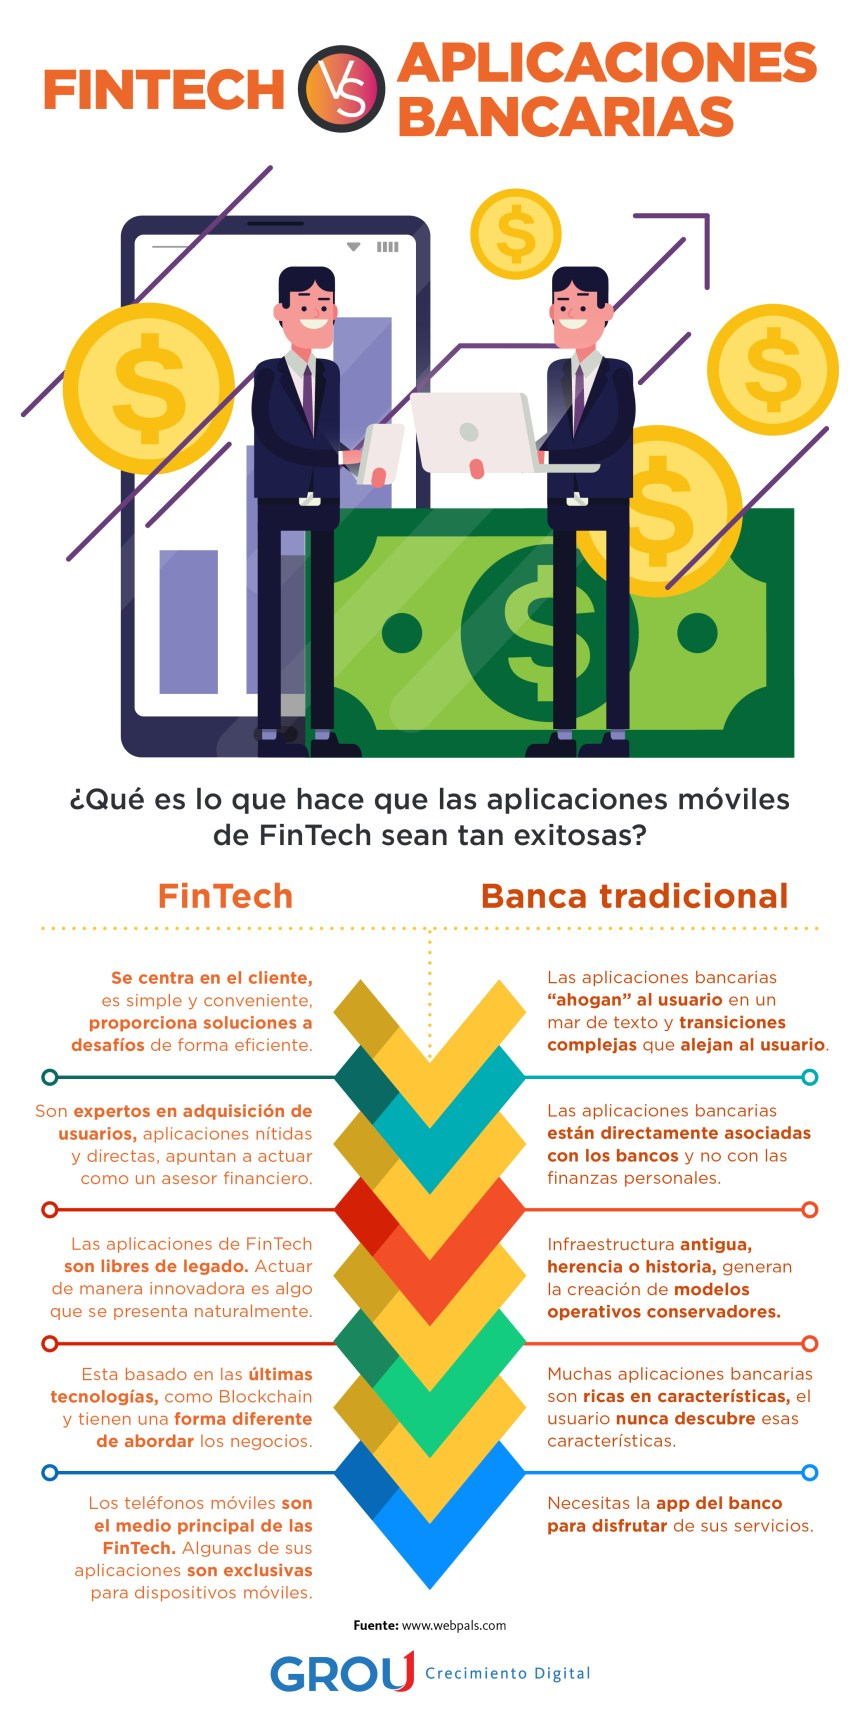 Fintech vs APPs bancarias